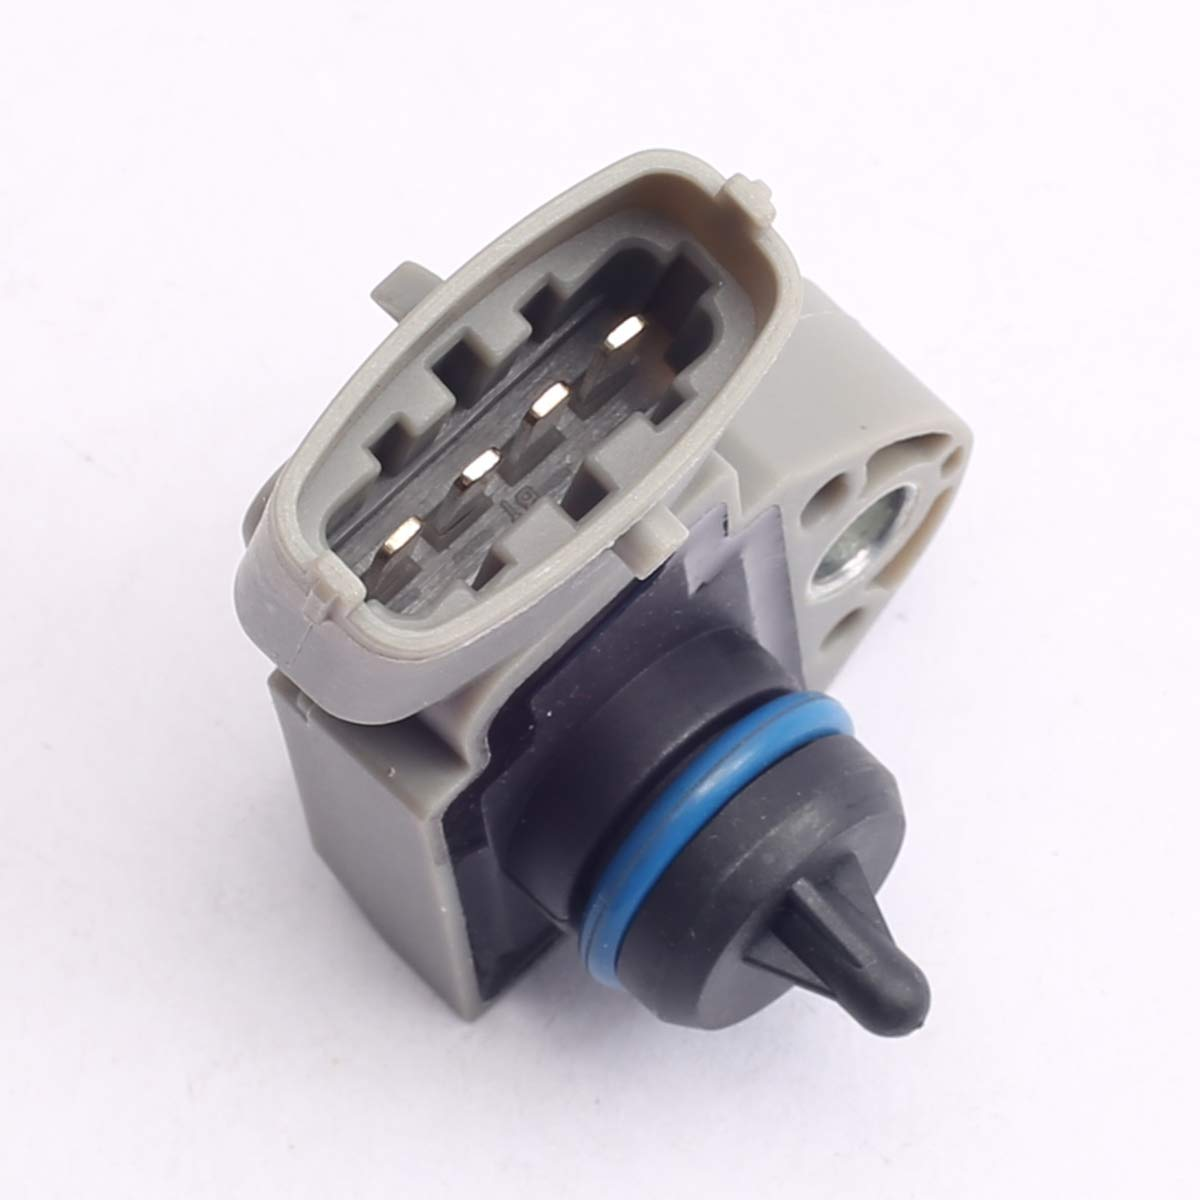 0261230238 Replacement Compatible with Ford Focus Kuga I Volvo C70 S40 S60 S80 V50 V60 XC60 XC70 XC90 Land Rover LR2 PeakCar Fuel Pressure Sensor